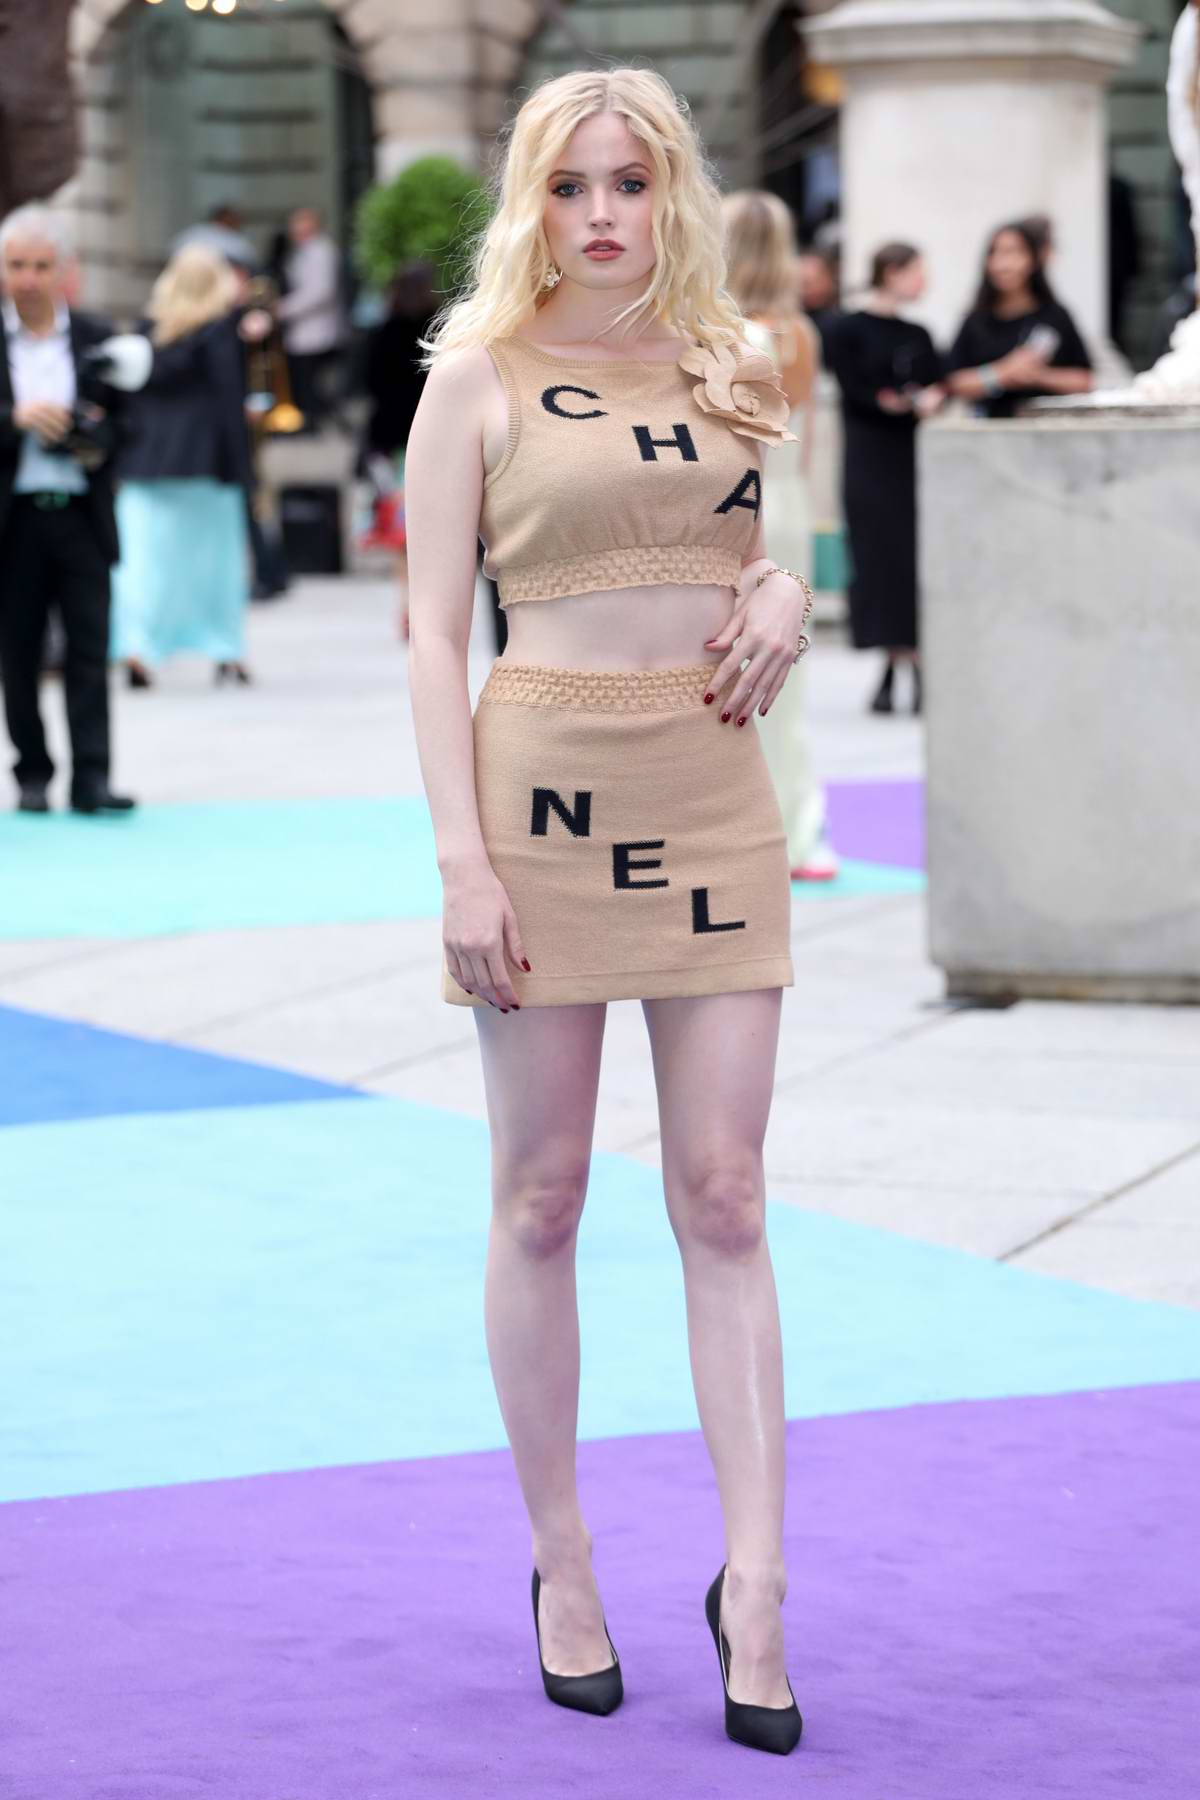 Ellie Bamber attends the Royal Academy of Arts Summer Exhibition Preview Party in London, UK